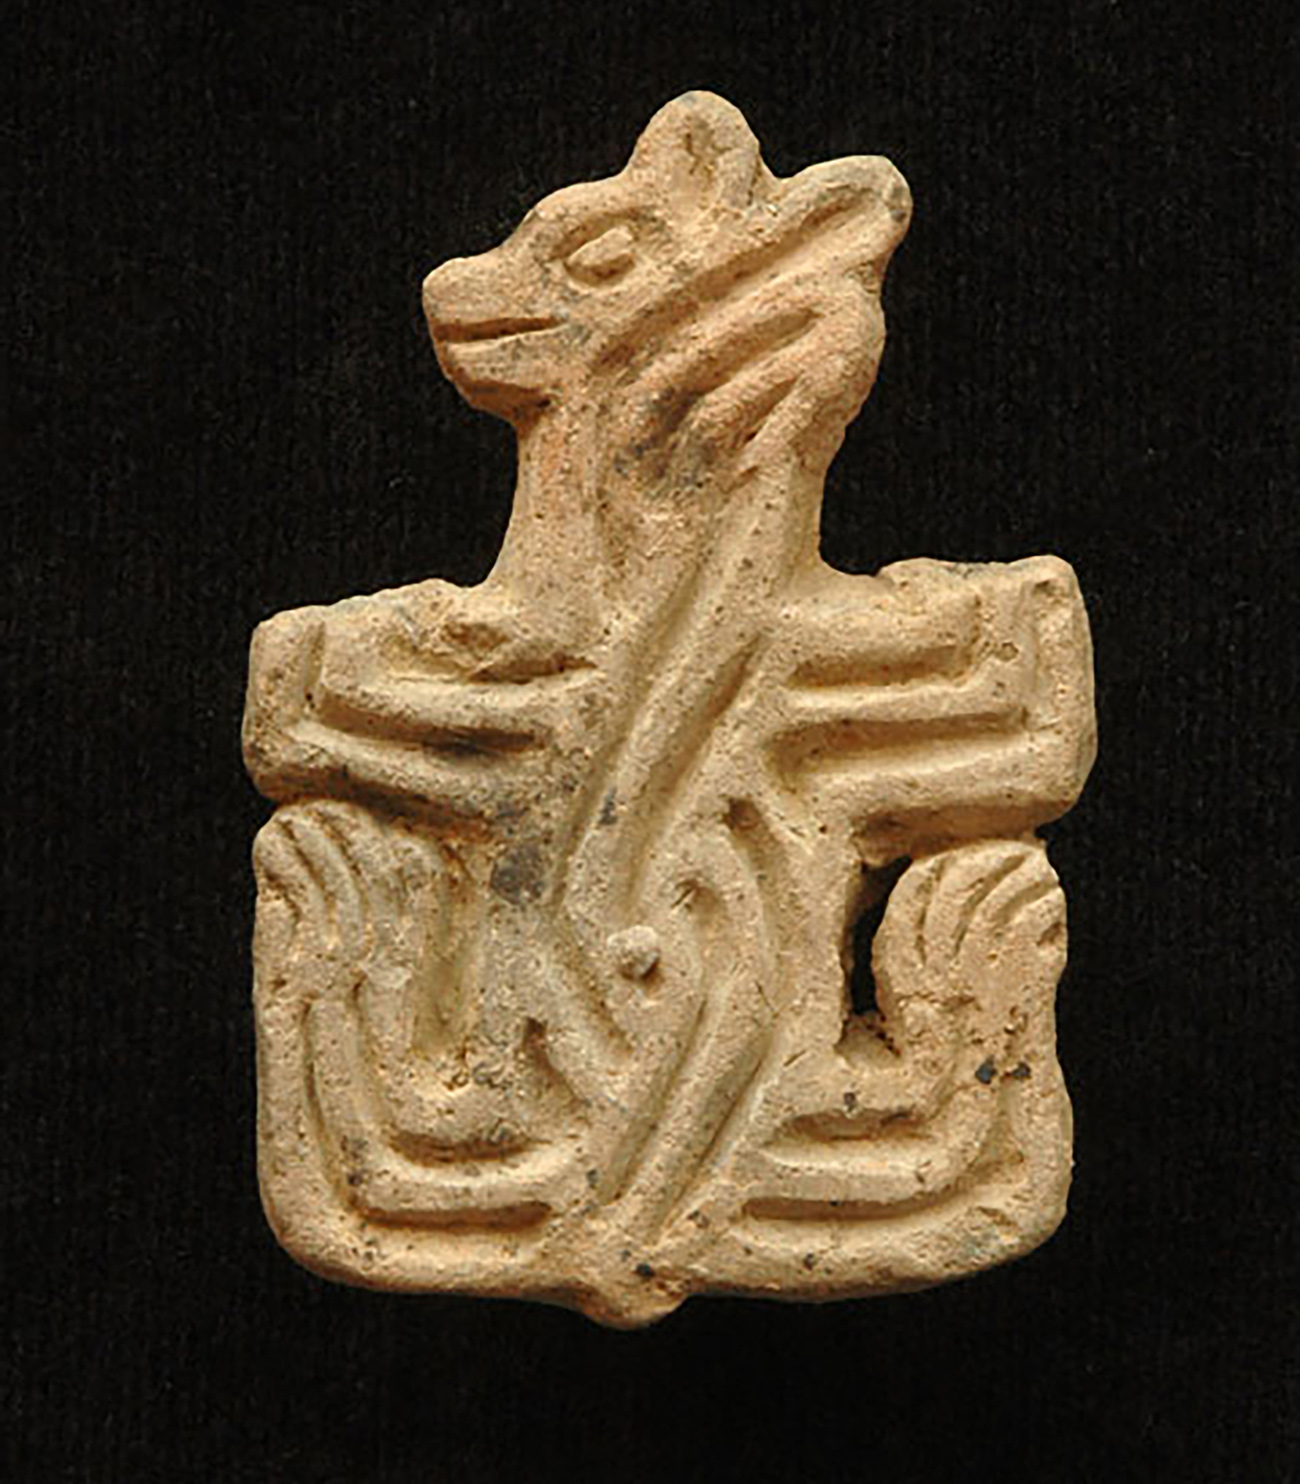 Ancient stone carving of a mammal with large paws and small ears, ornamented with sinuous lines